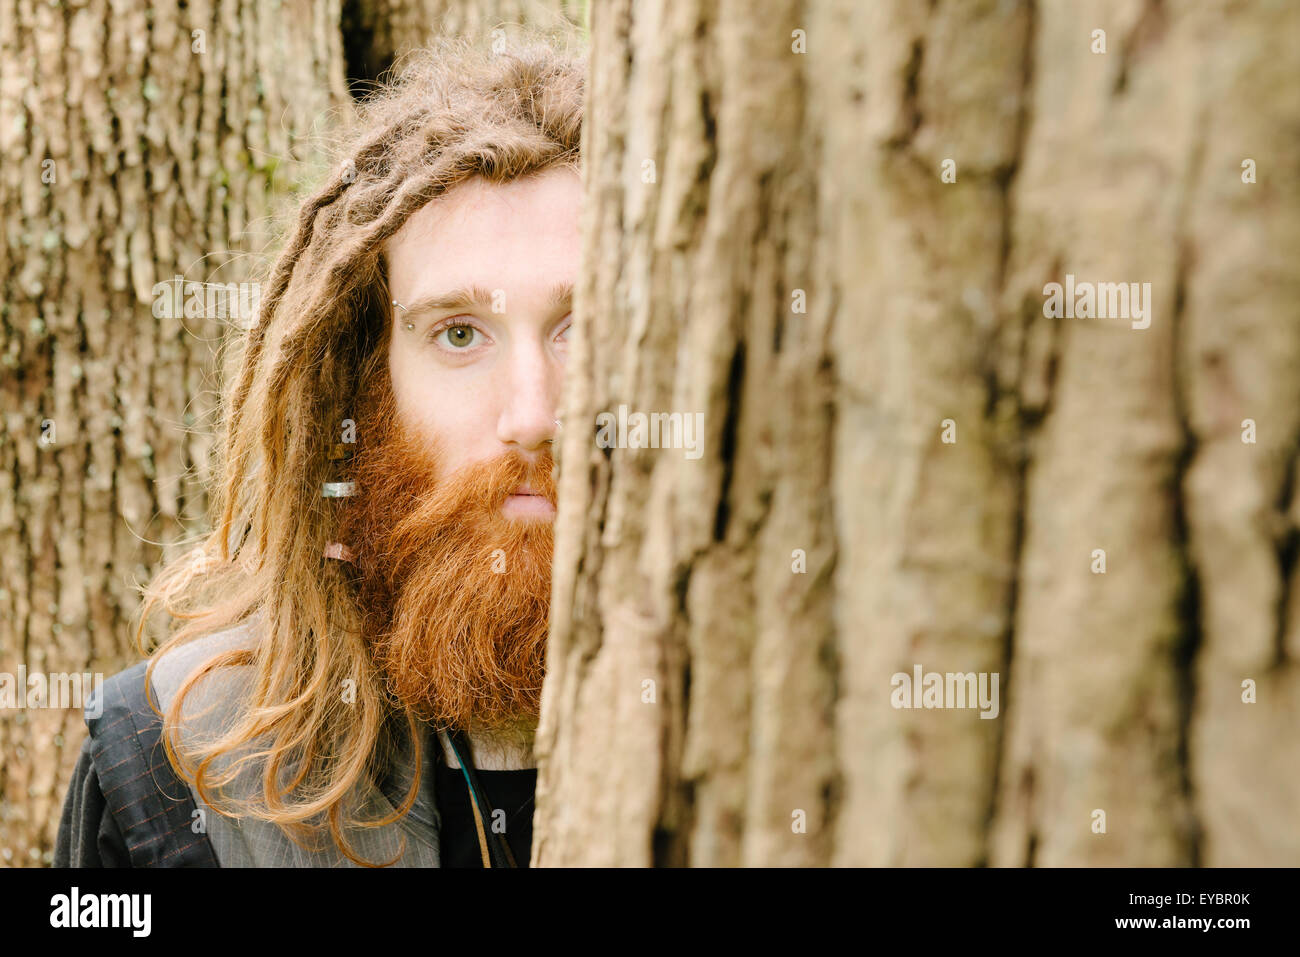 A hippy man with dreads in the forest - Stock Image